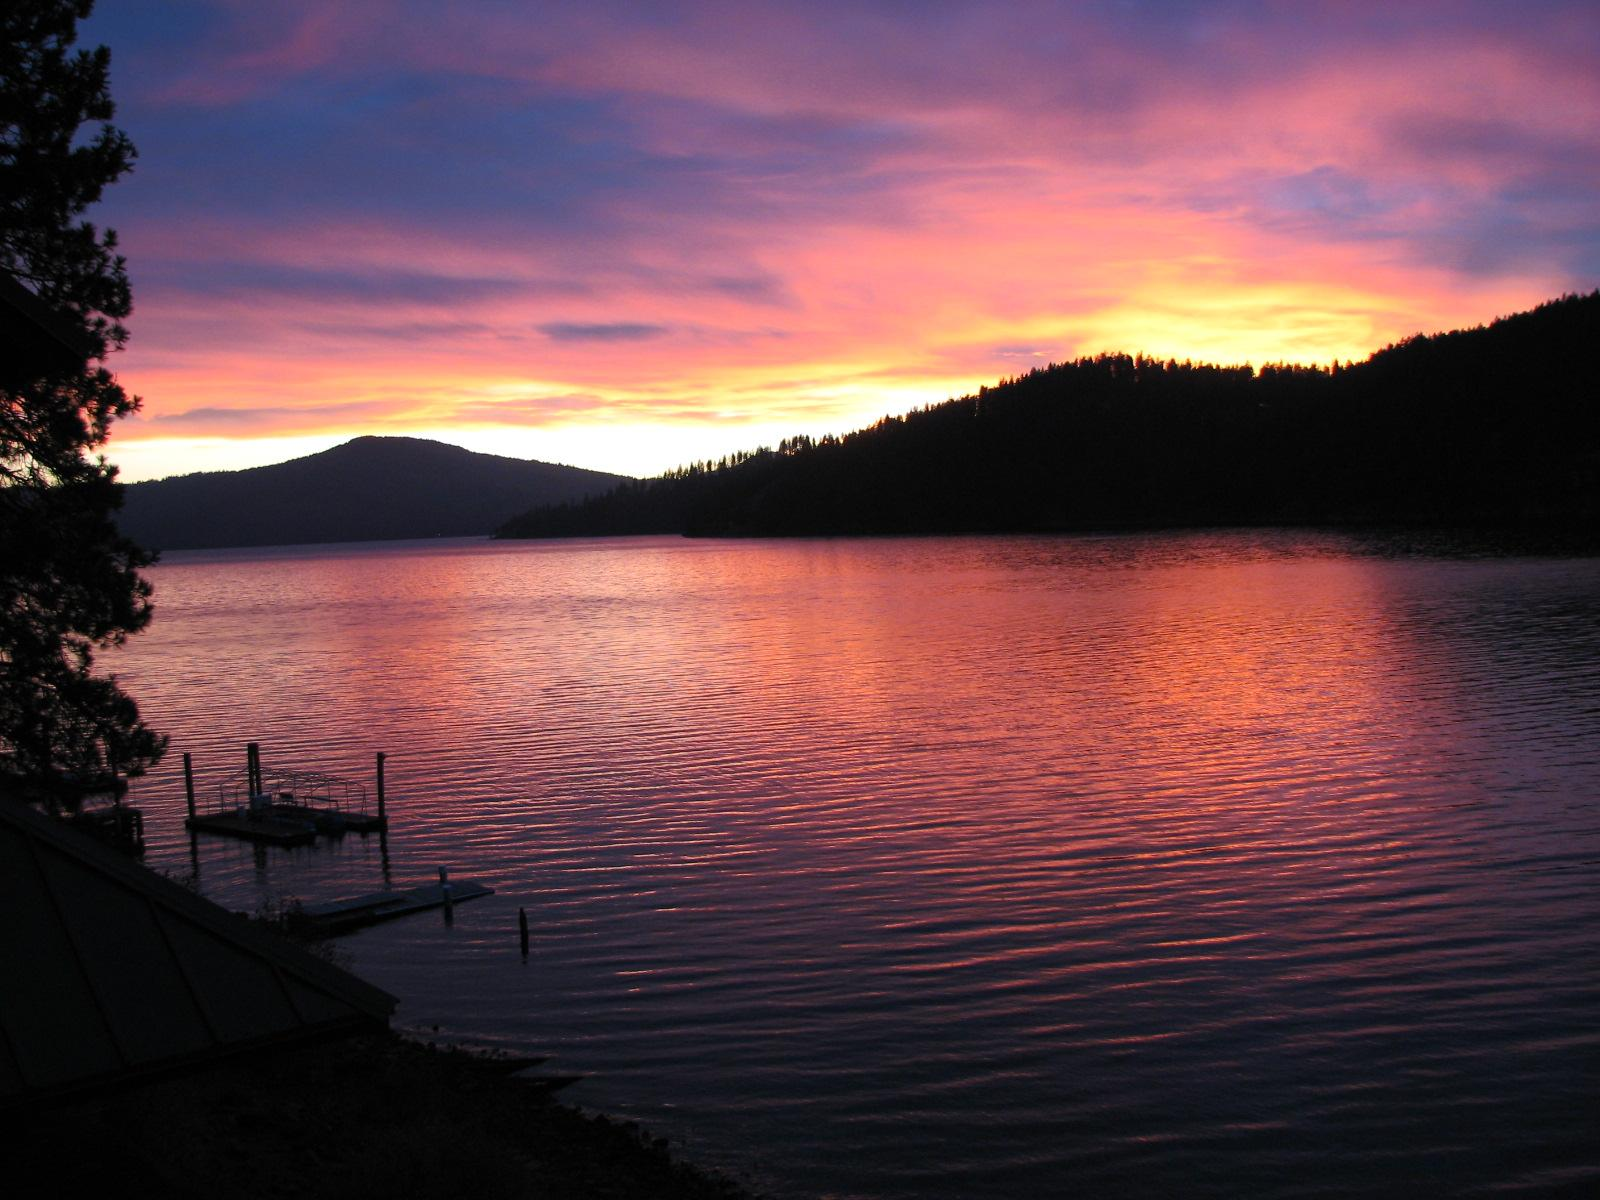 sunset at Coeur d'Alene Lake